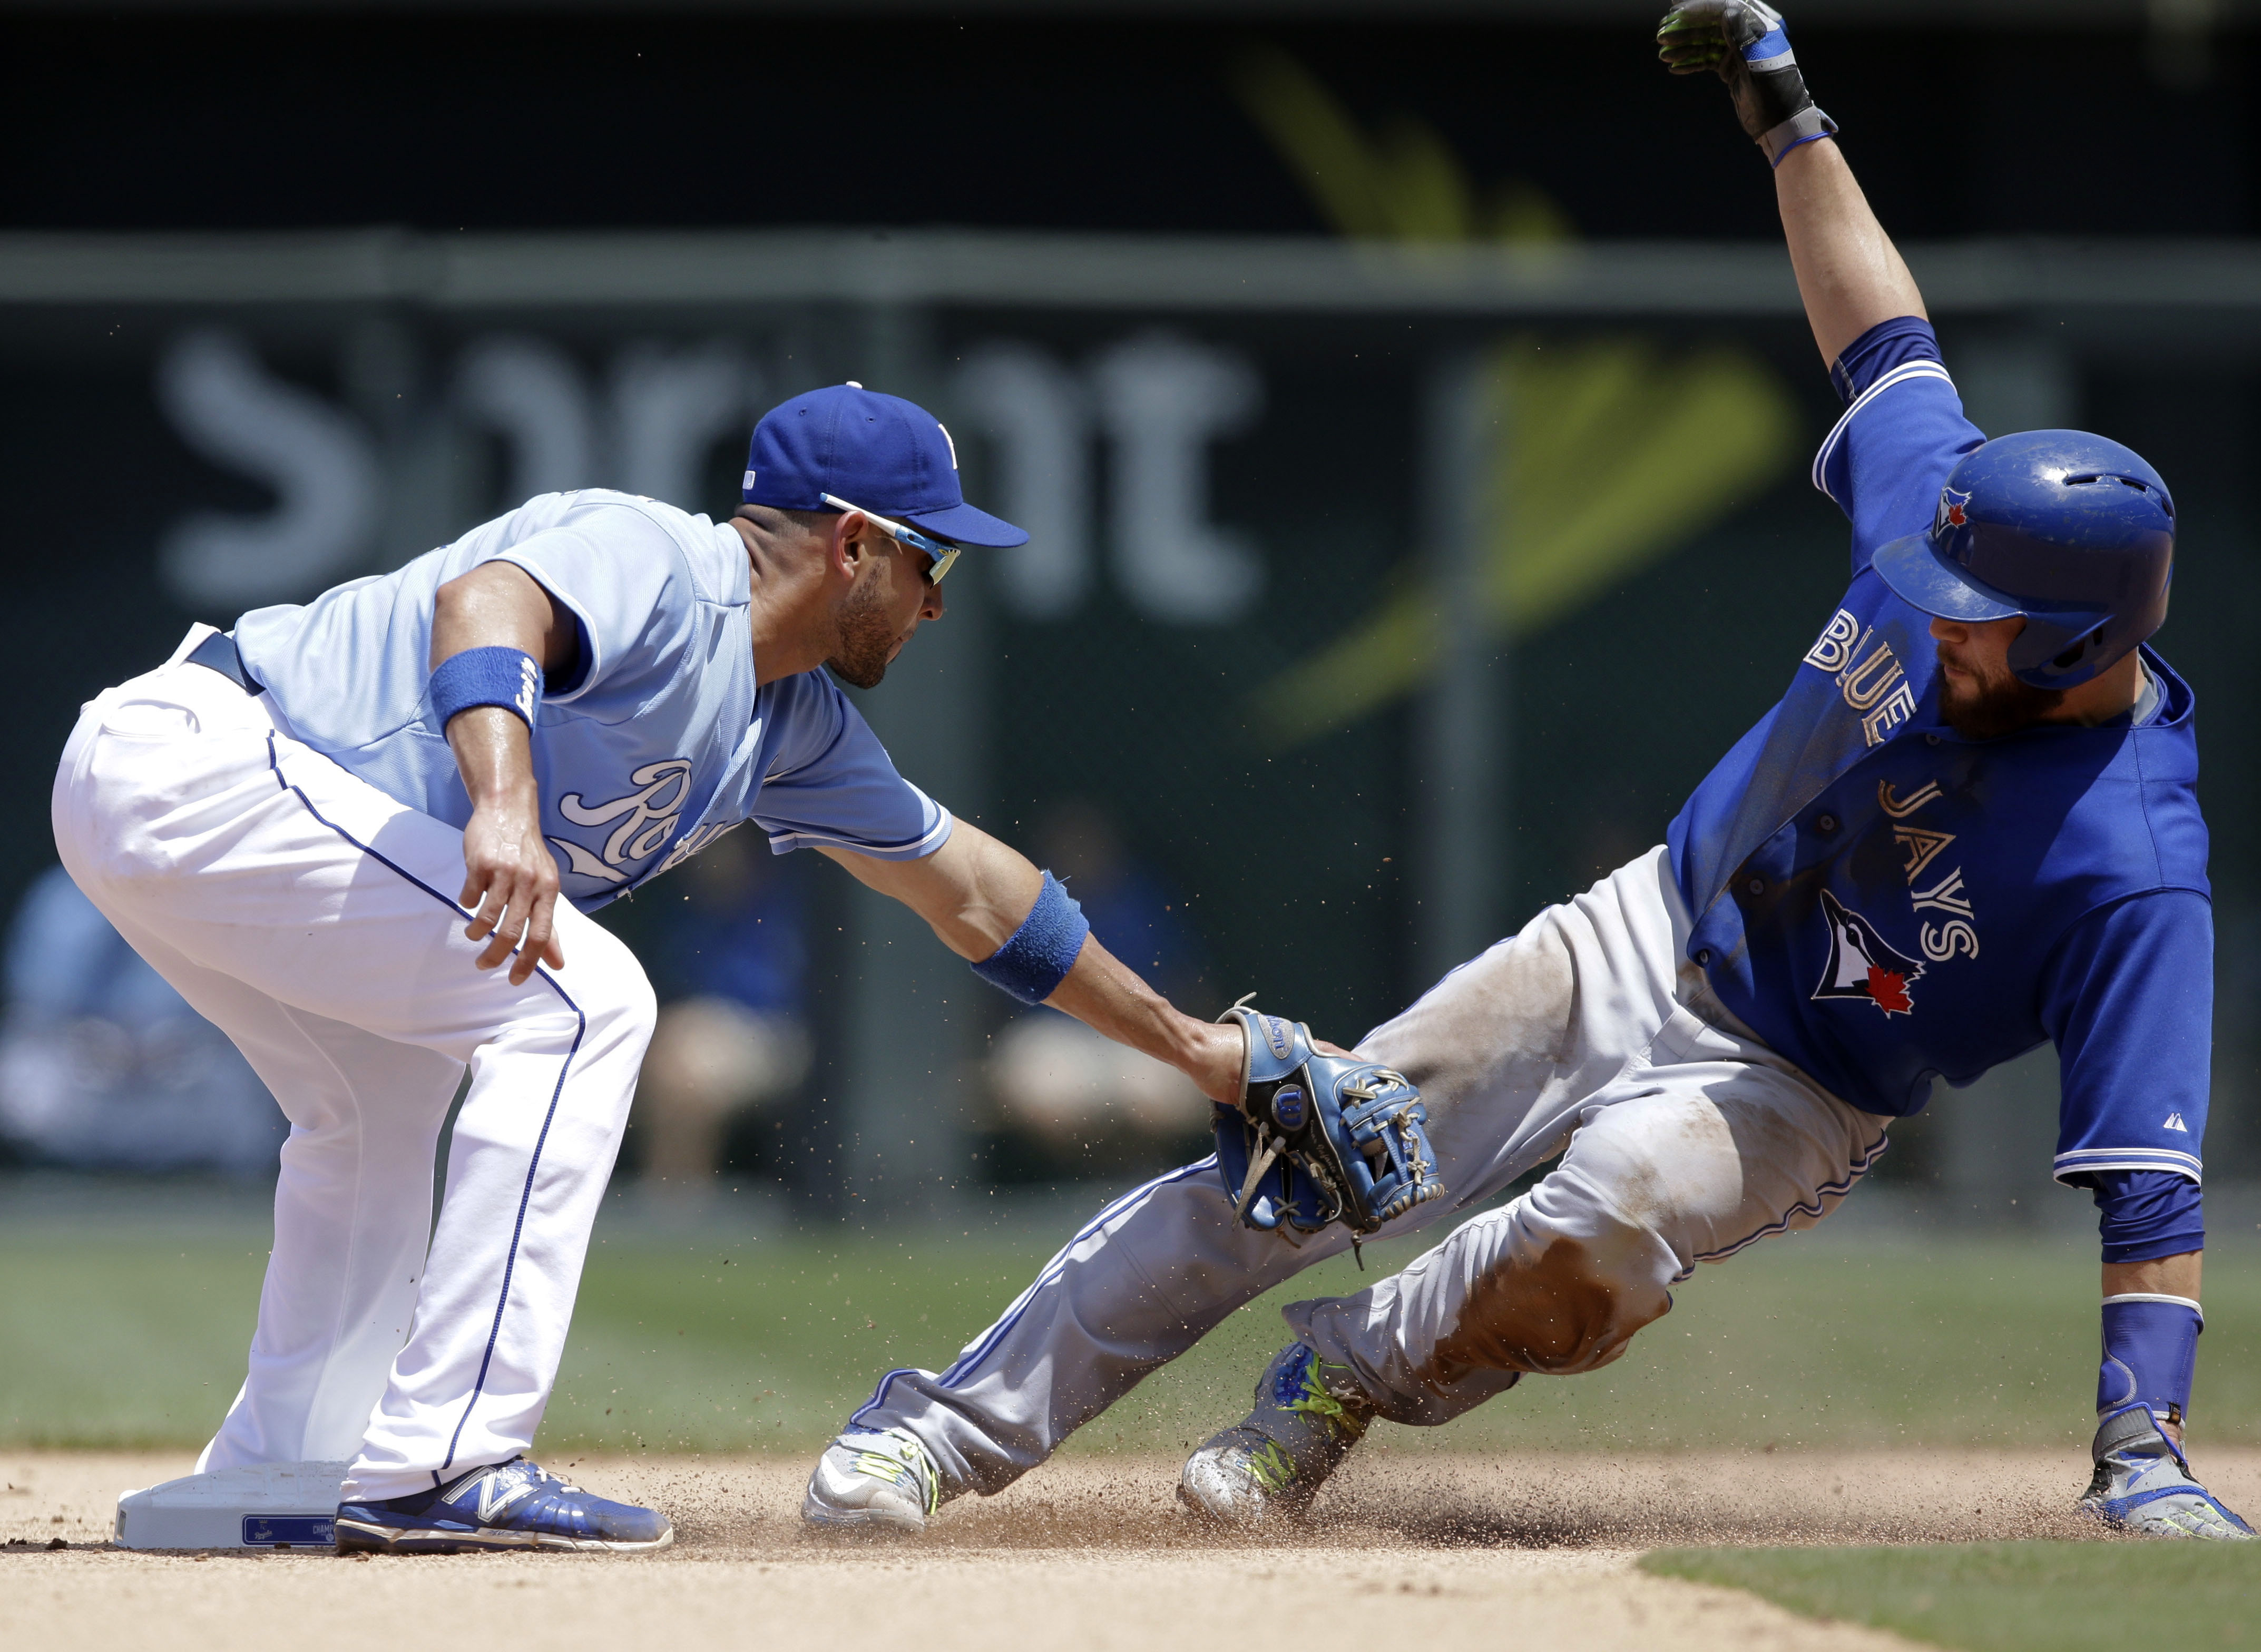 Kansas City Royals second baseman Omar Infante, left, tags out Toronto Blue Jays' Russell Martin, right, during the sixth inning of a baseball game at Kauffman Stadium in Kansas City, Mo., Saturday, July 11, 2015. Martin was caught stealing on the play. (